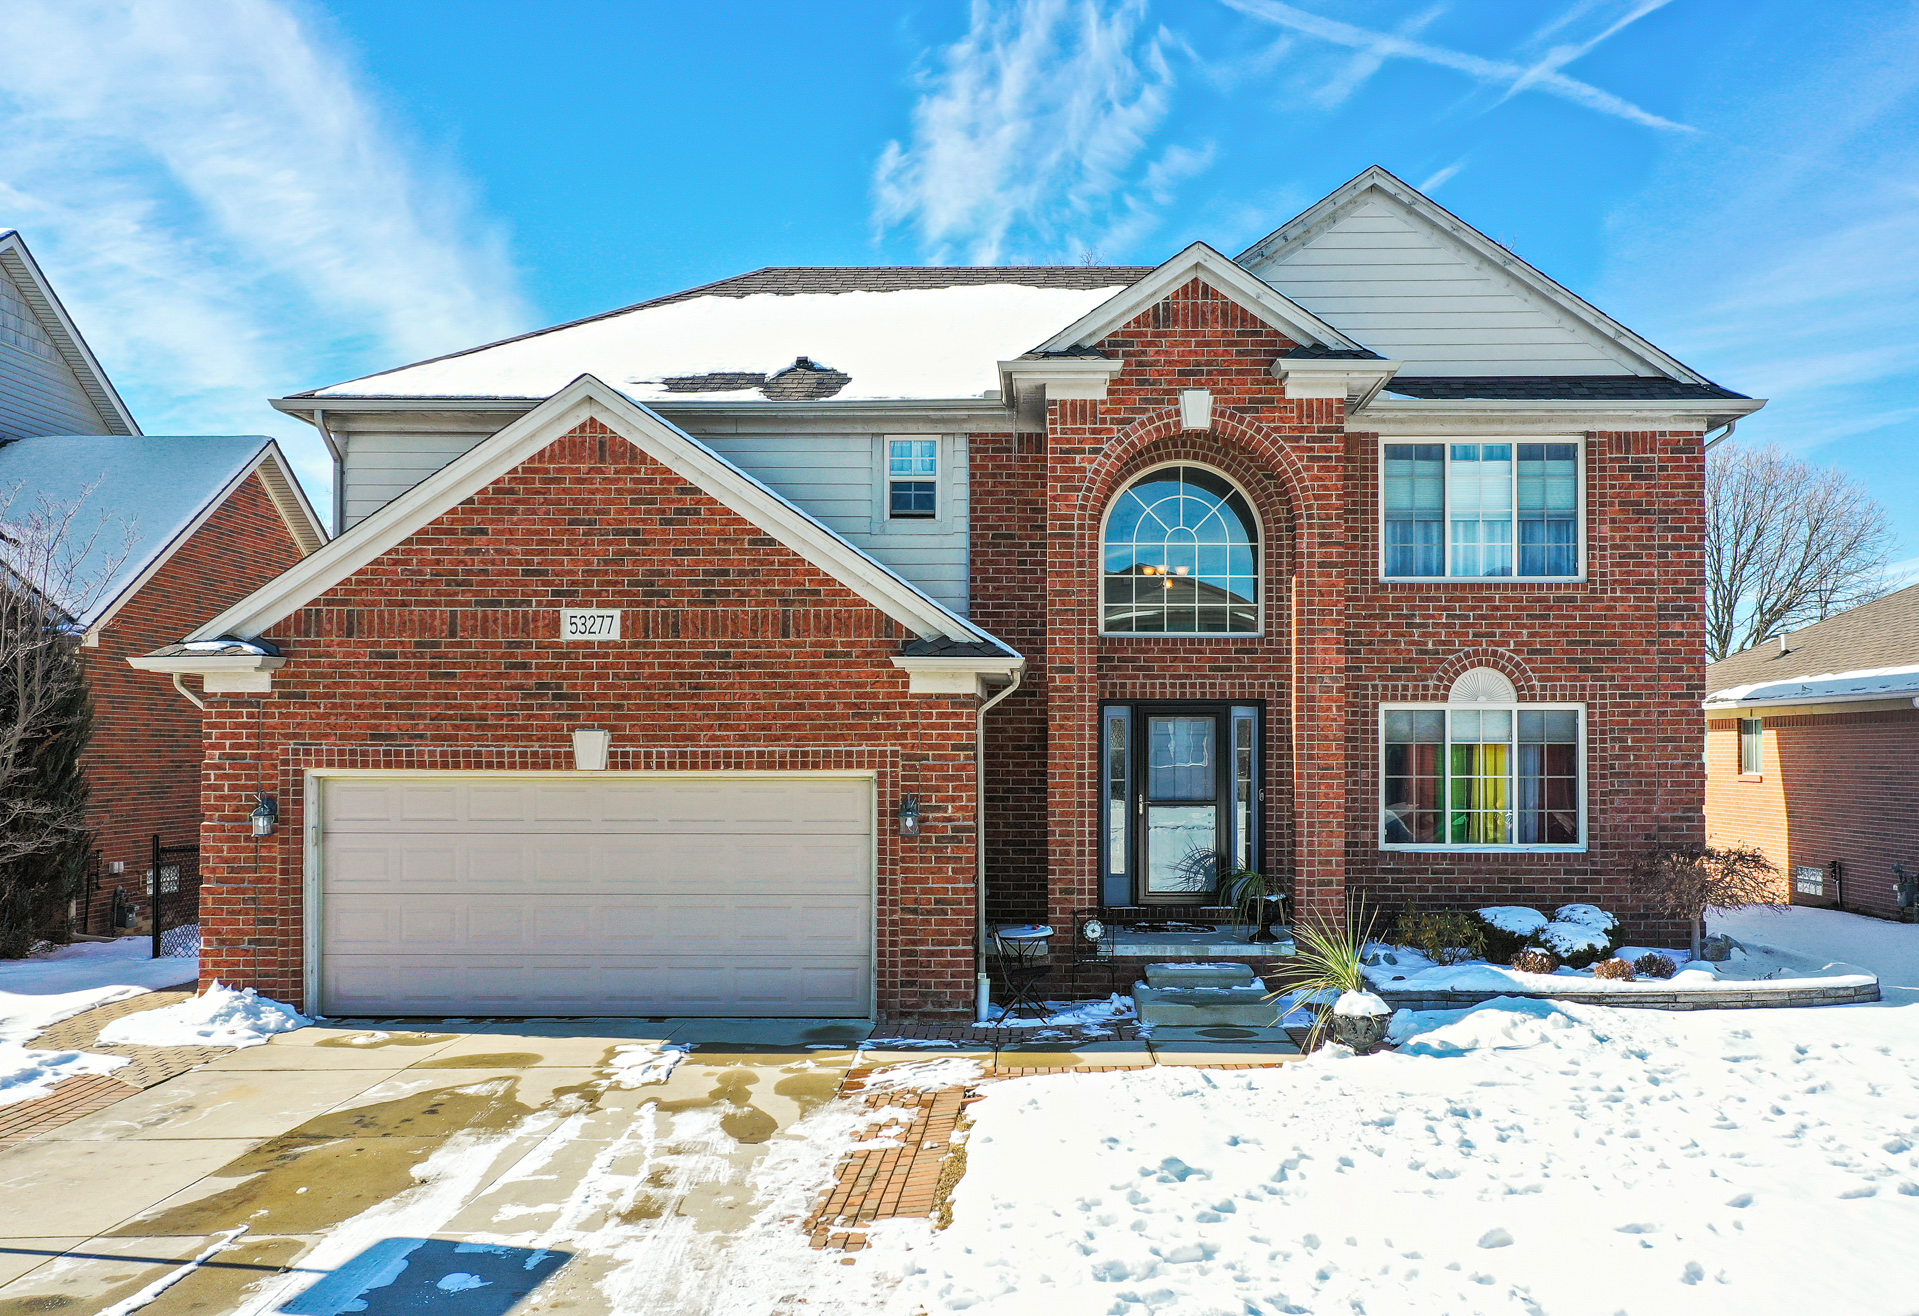 53277 Crawford, Chesterfield (PENDING)